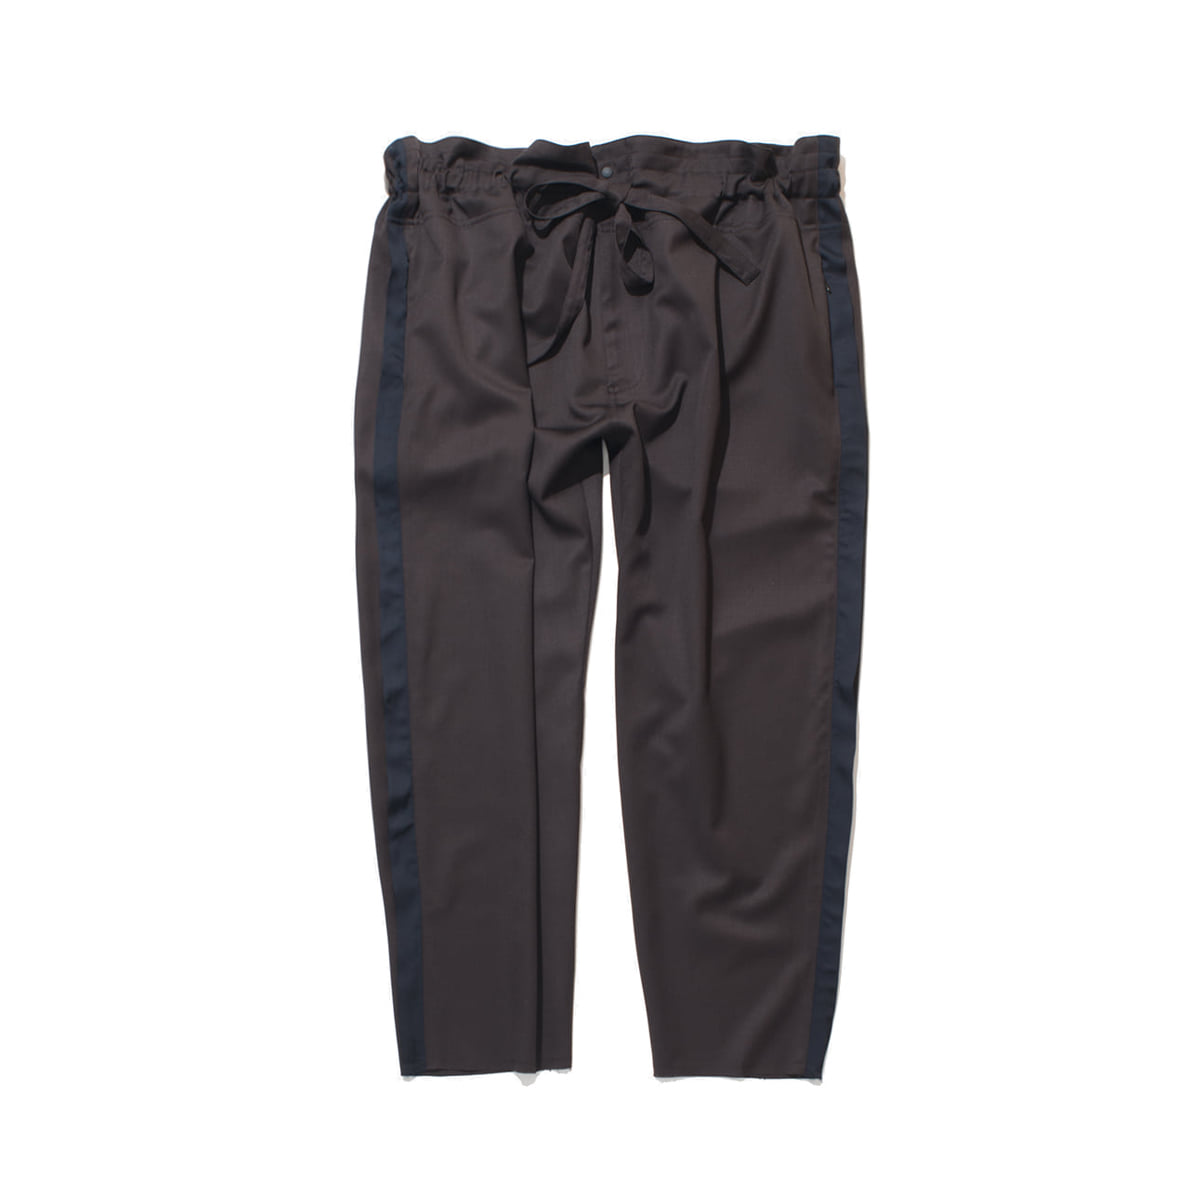 [GAKURO] TAPERED WRAP PANTS 'BROWN'